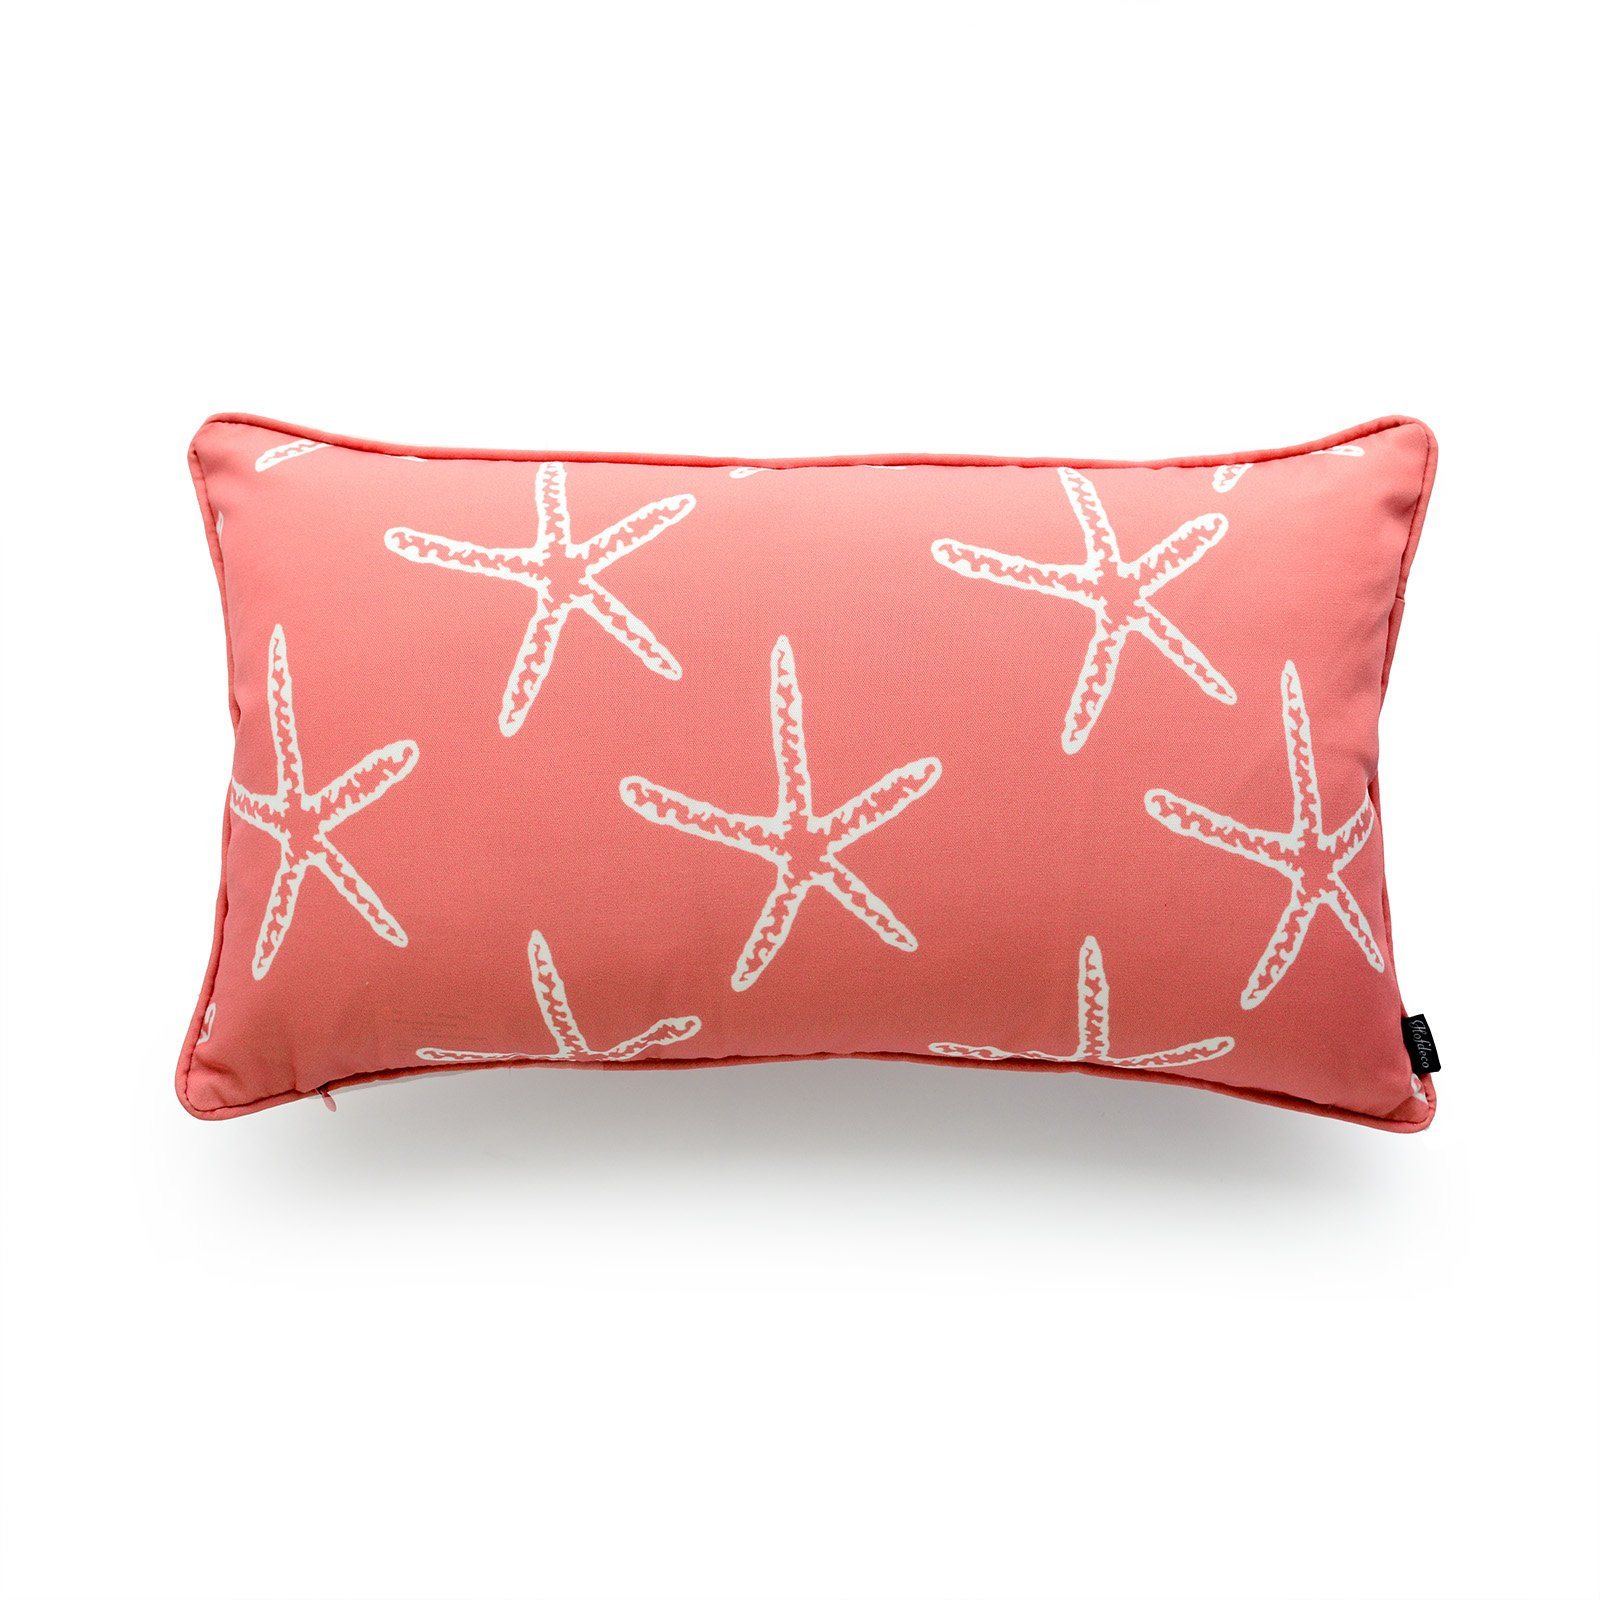 Hofdeco Decorative Lumbar Pillow Cover OUTDOOR WATER RESISTANT Canvas Coral Love Starfish 12''x20''